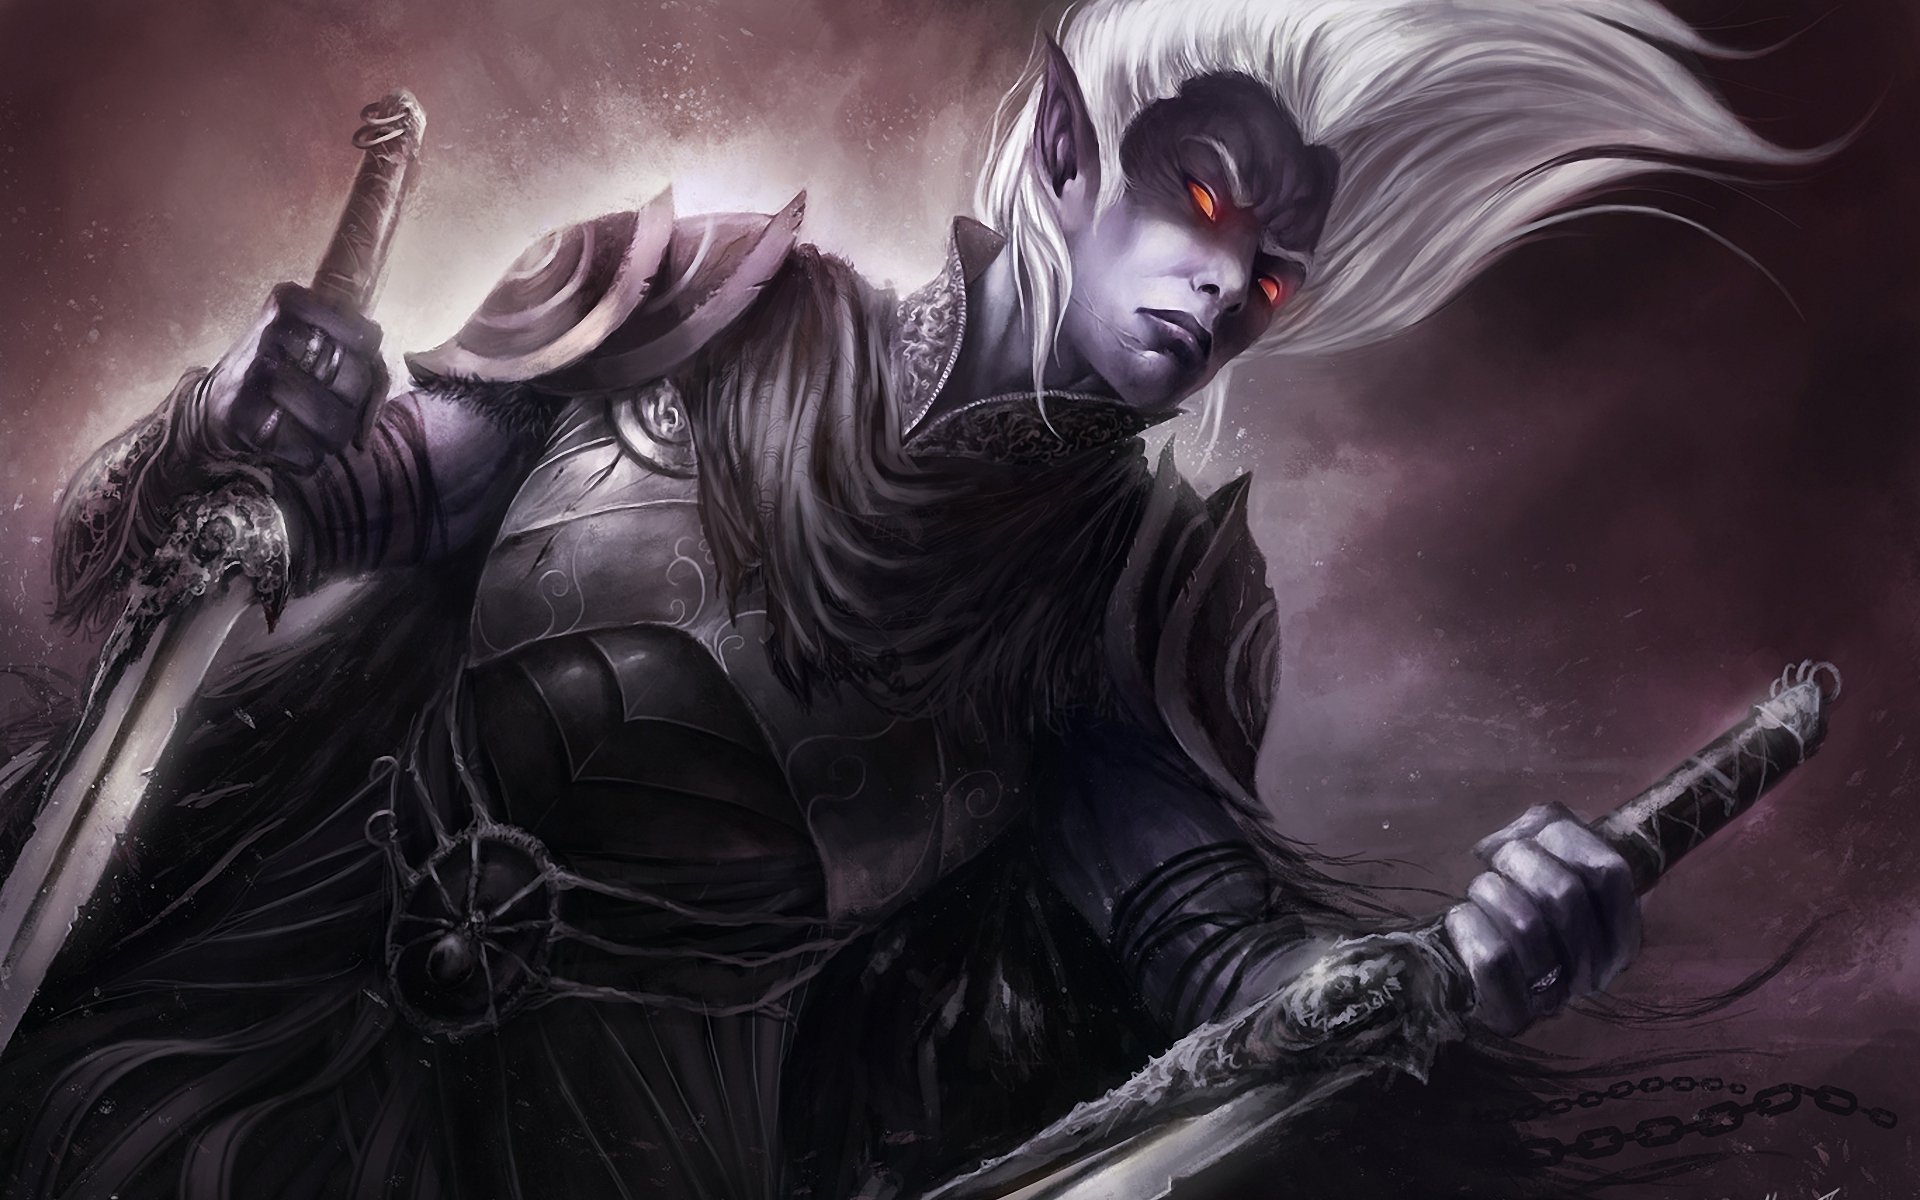 Male Drow By Michael Gauss Full HD Wallpaper And